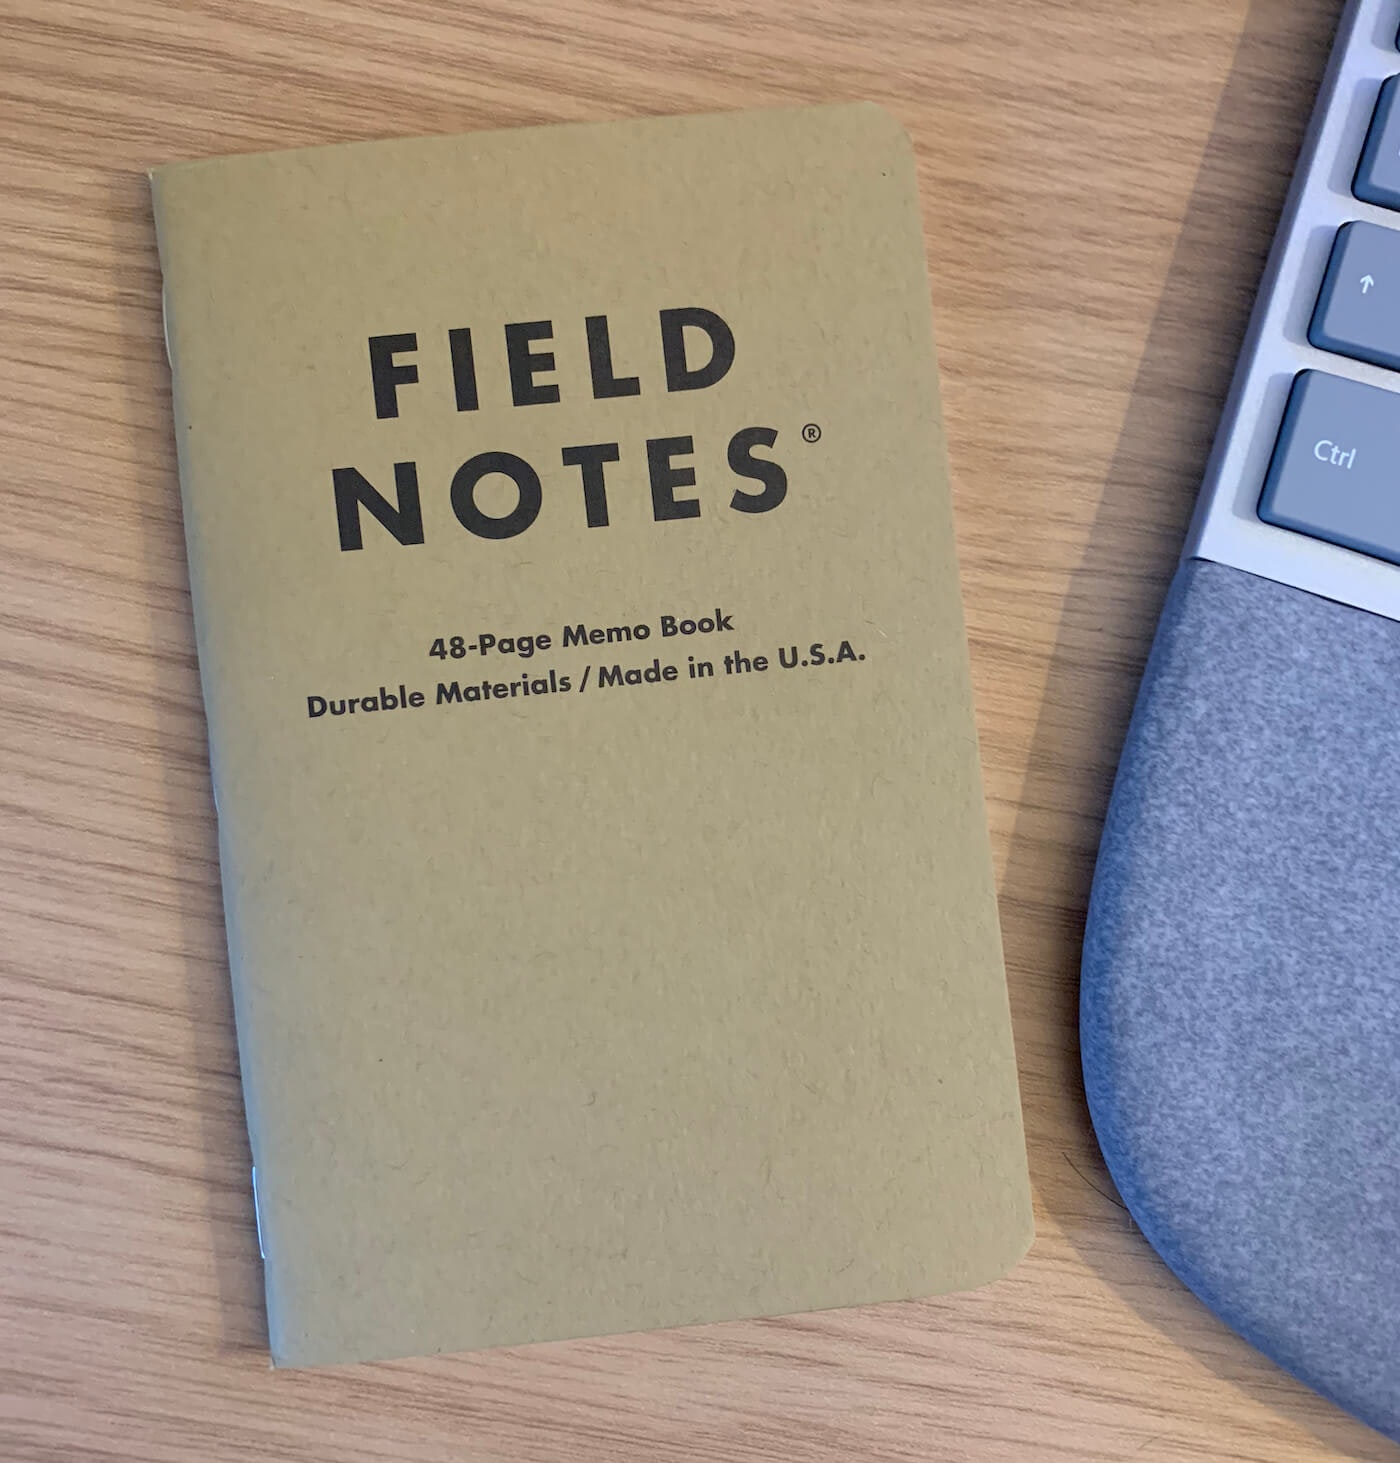 A fresh Field Notes notepad sits on a brown desk, next to a keyboard